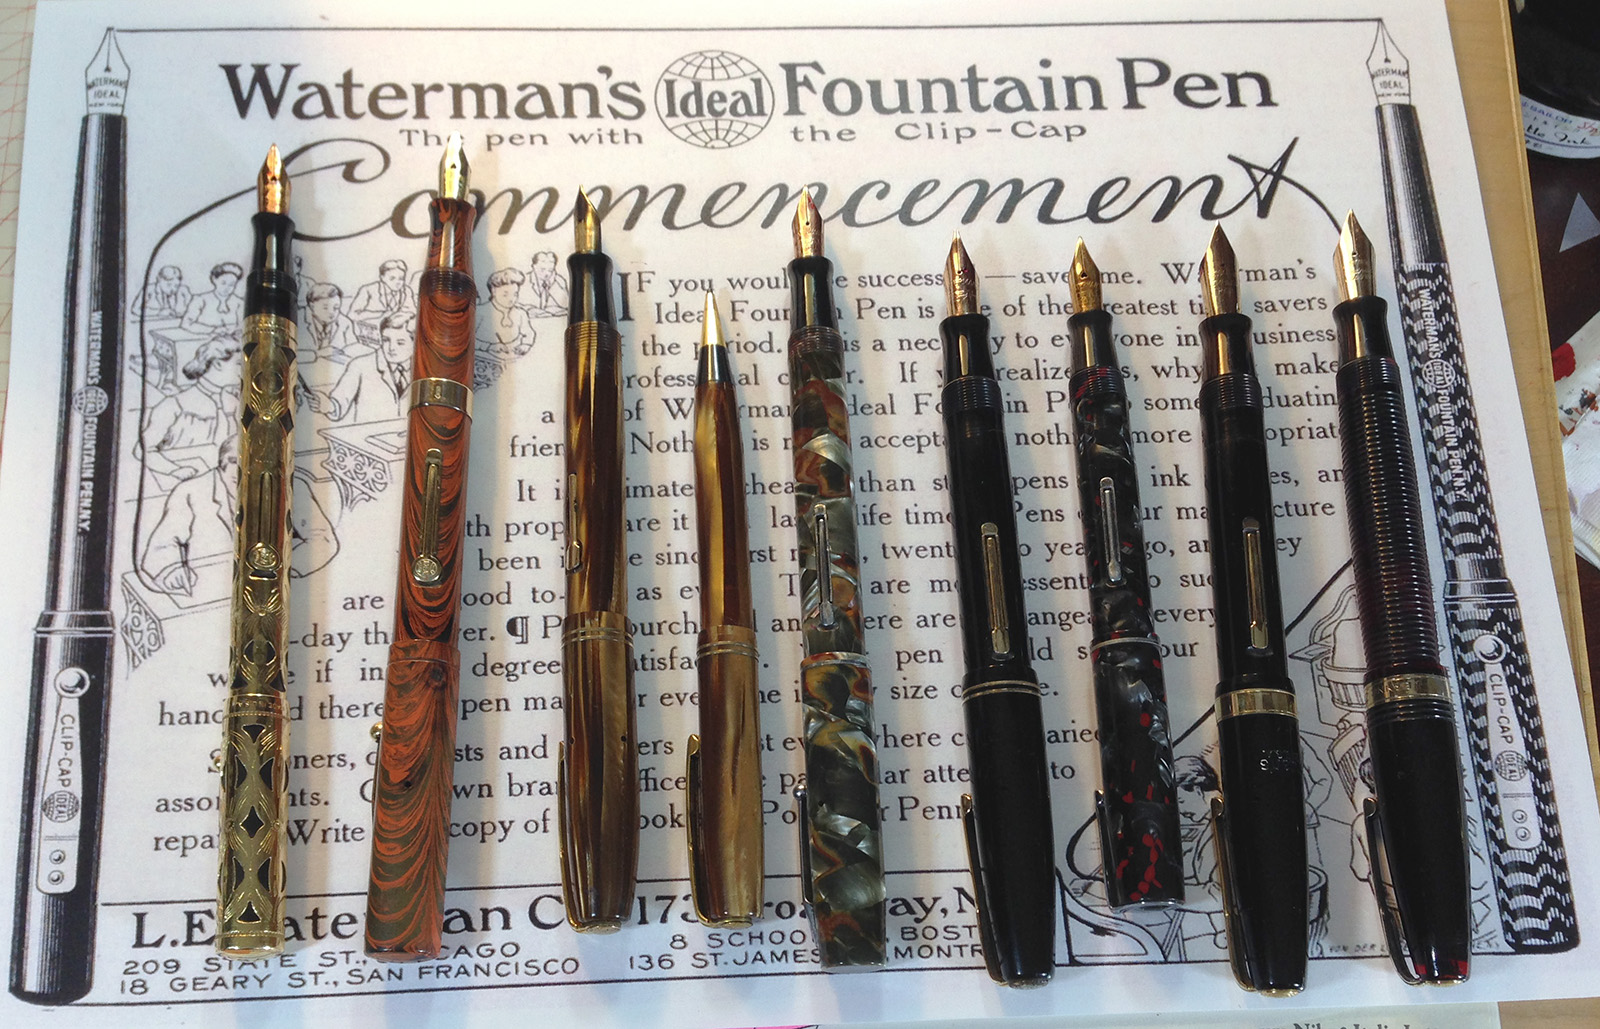 fpn_1423577547__waterman_pens.jpg